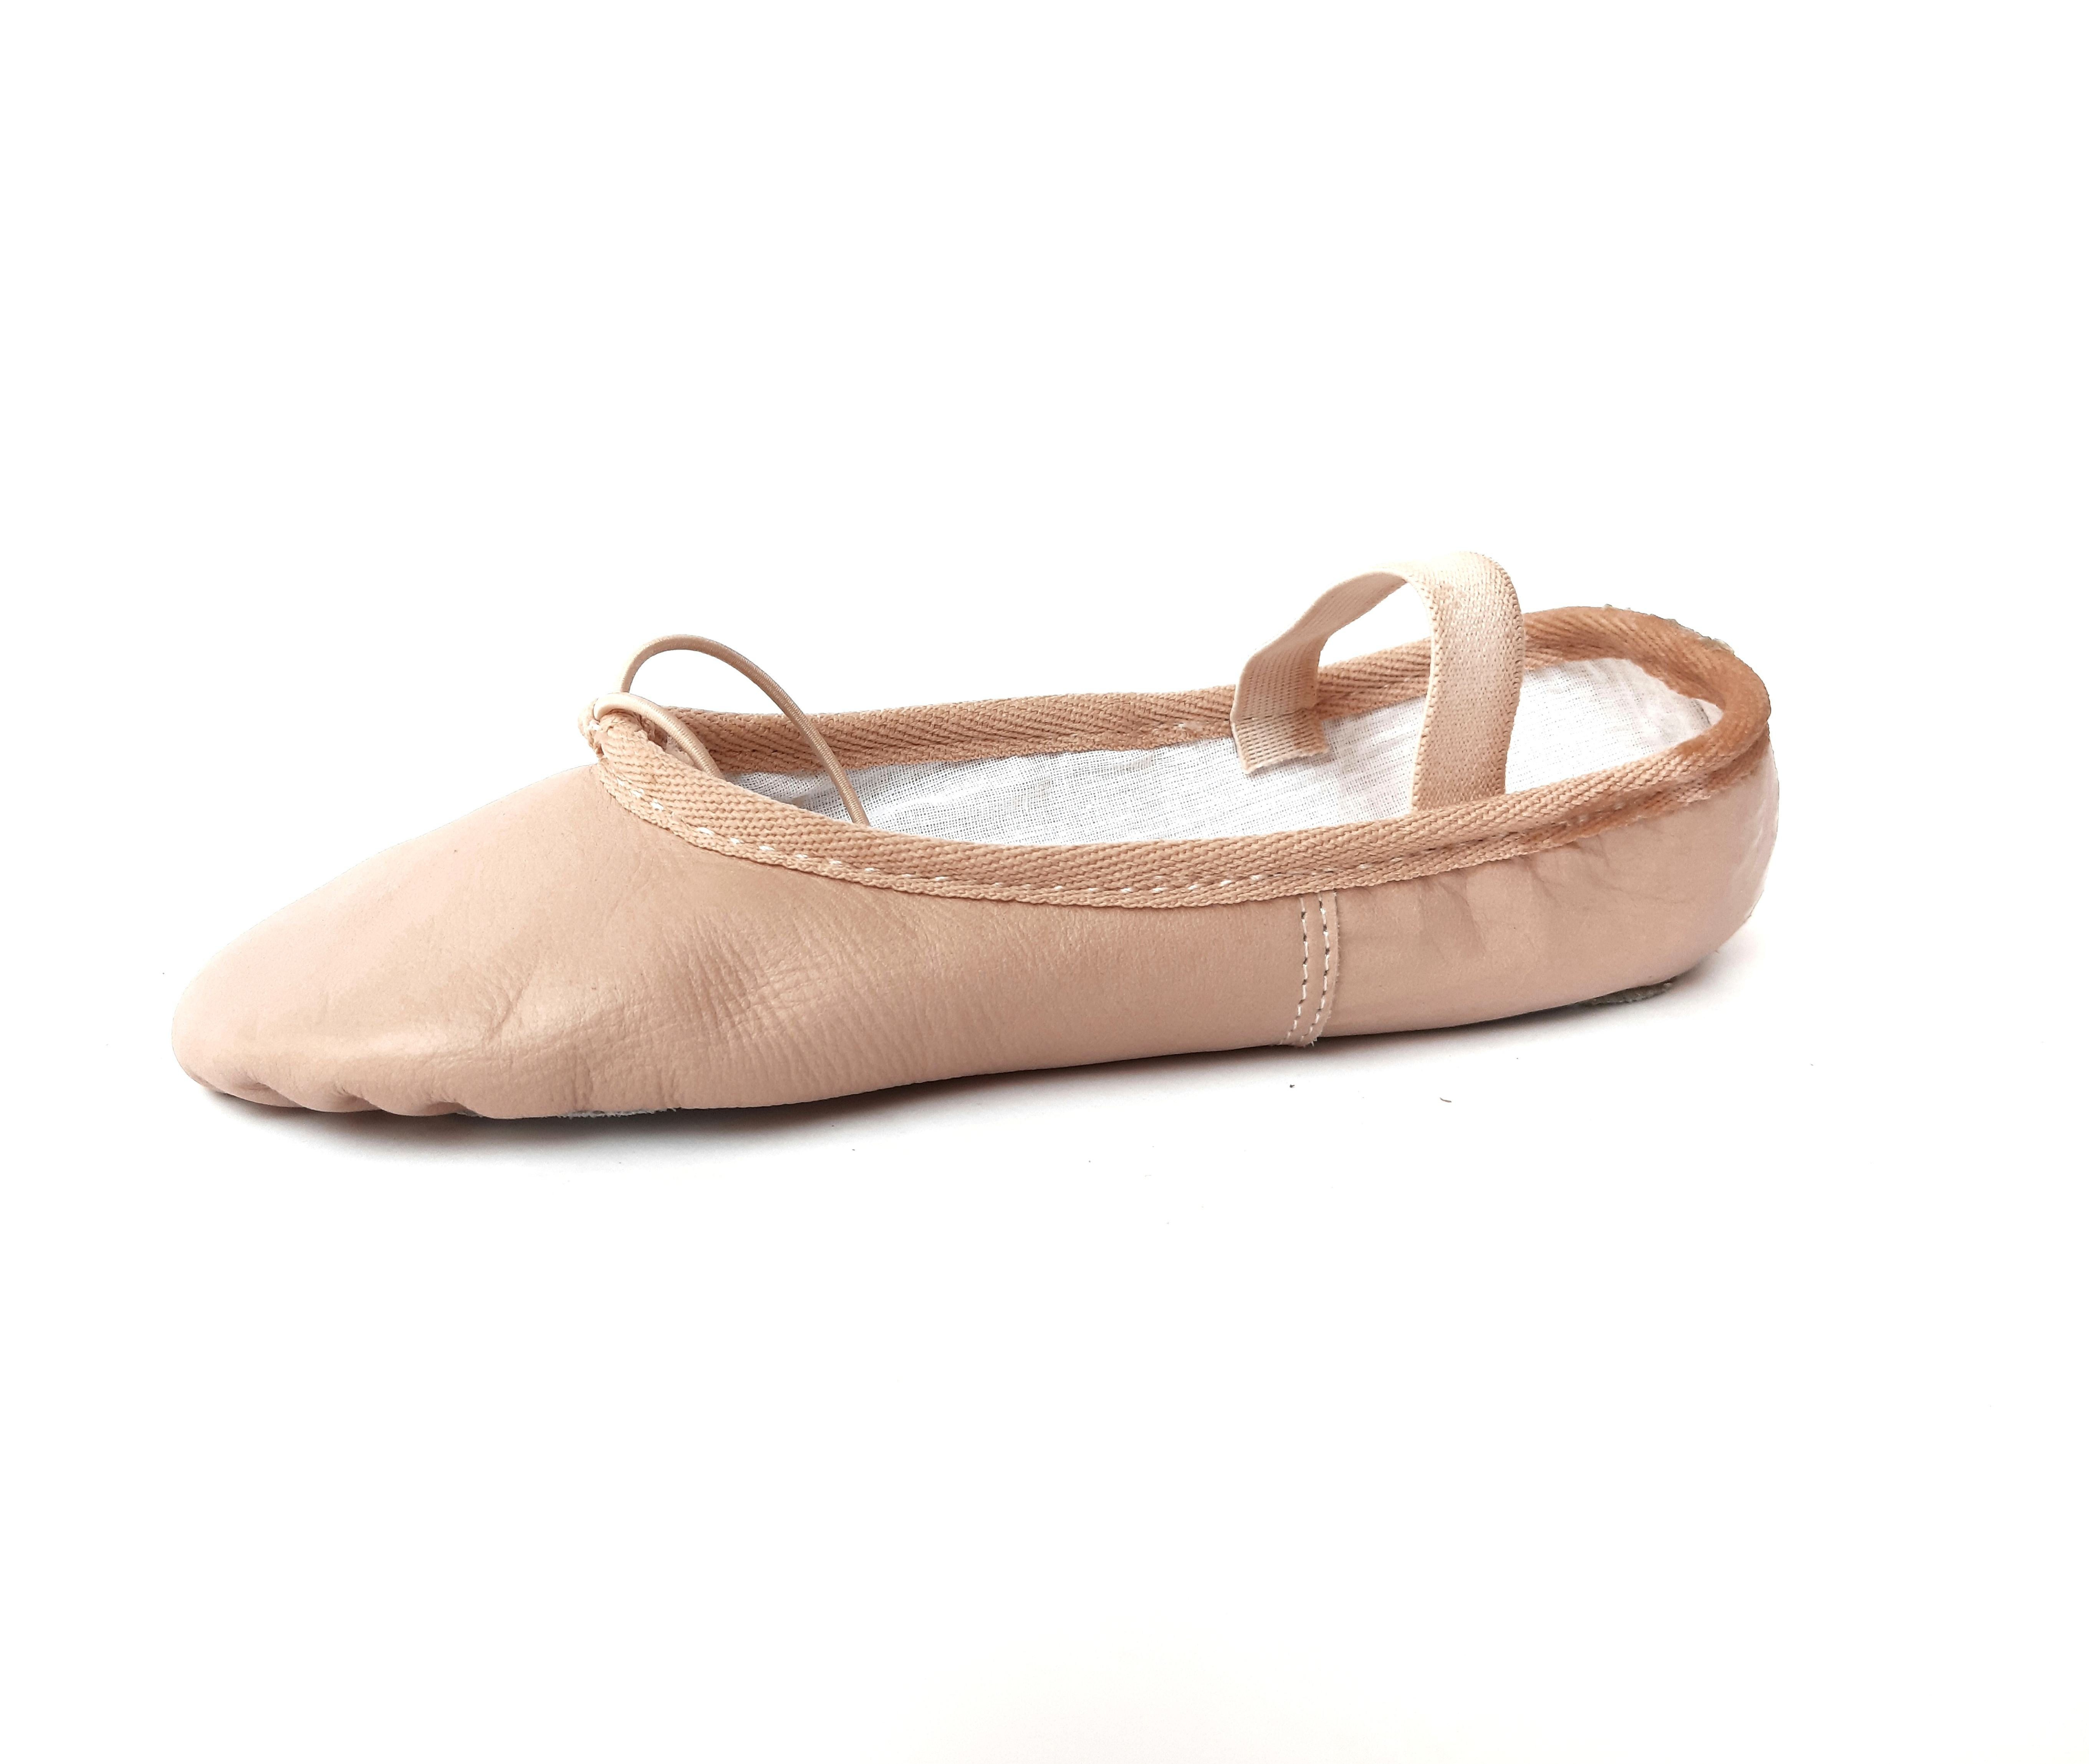 Soft Leather Split Sole Pink Ballet Slippers Genuine Leather Adult Dance Shoes Women Custom Size Pointe Leather Ballet Sneakers